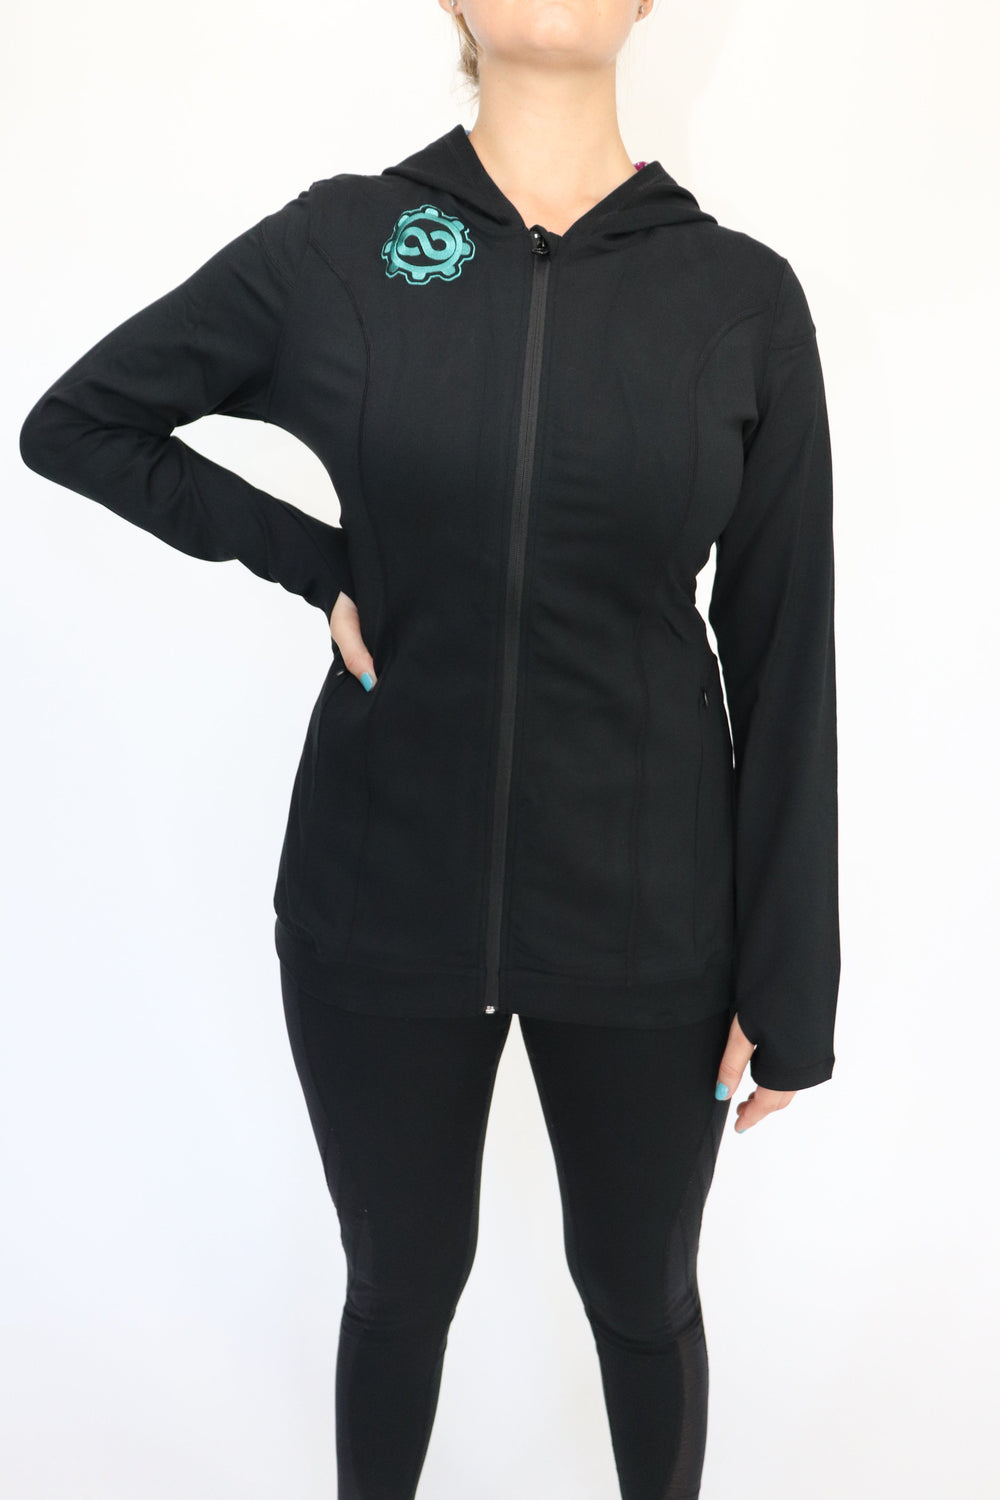 Women's Black Mandala Zip-Up Sports Jacket w/ Hood